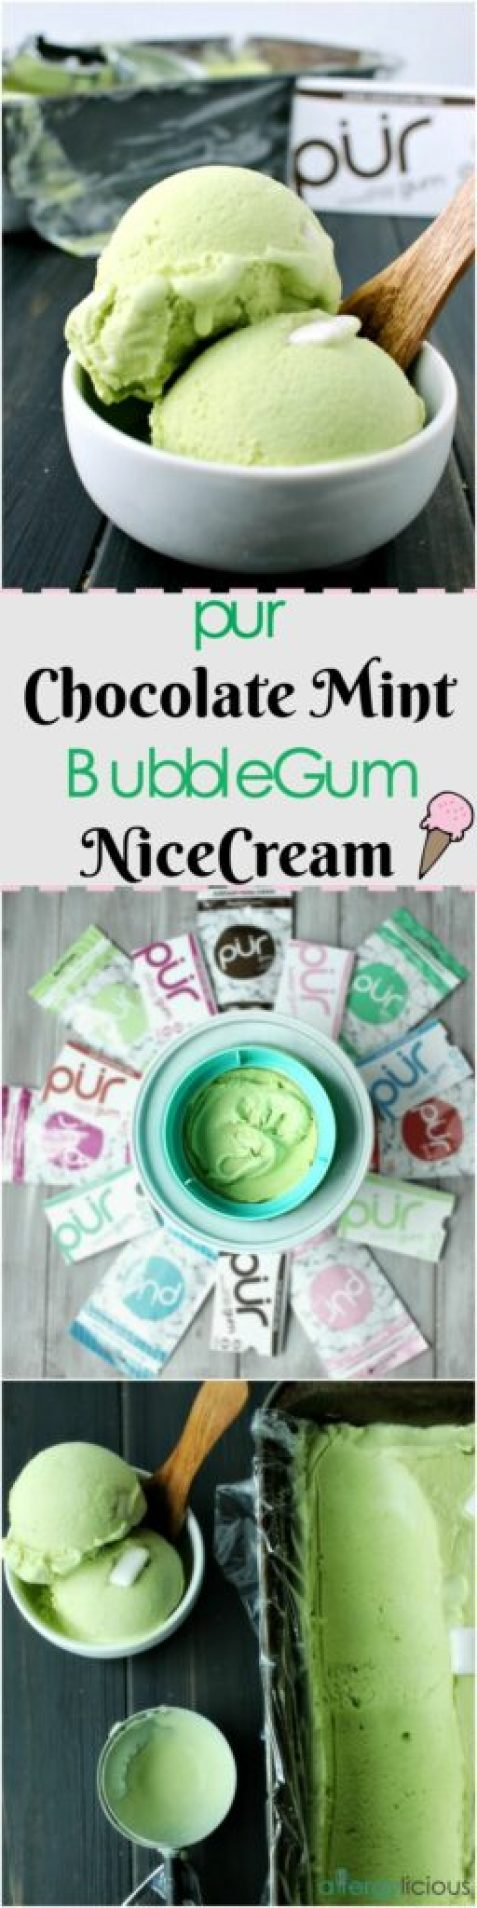 You won't believe this Chocolate Mint BubbleGum Nice Cream is actually healthy! Thanks to PUR gum and a few special ingredients.